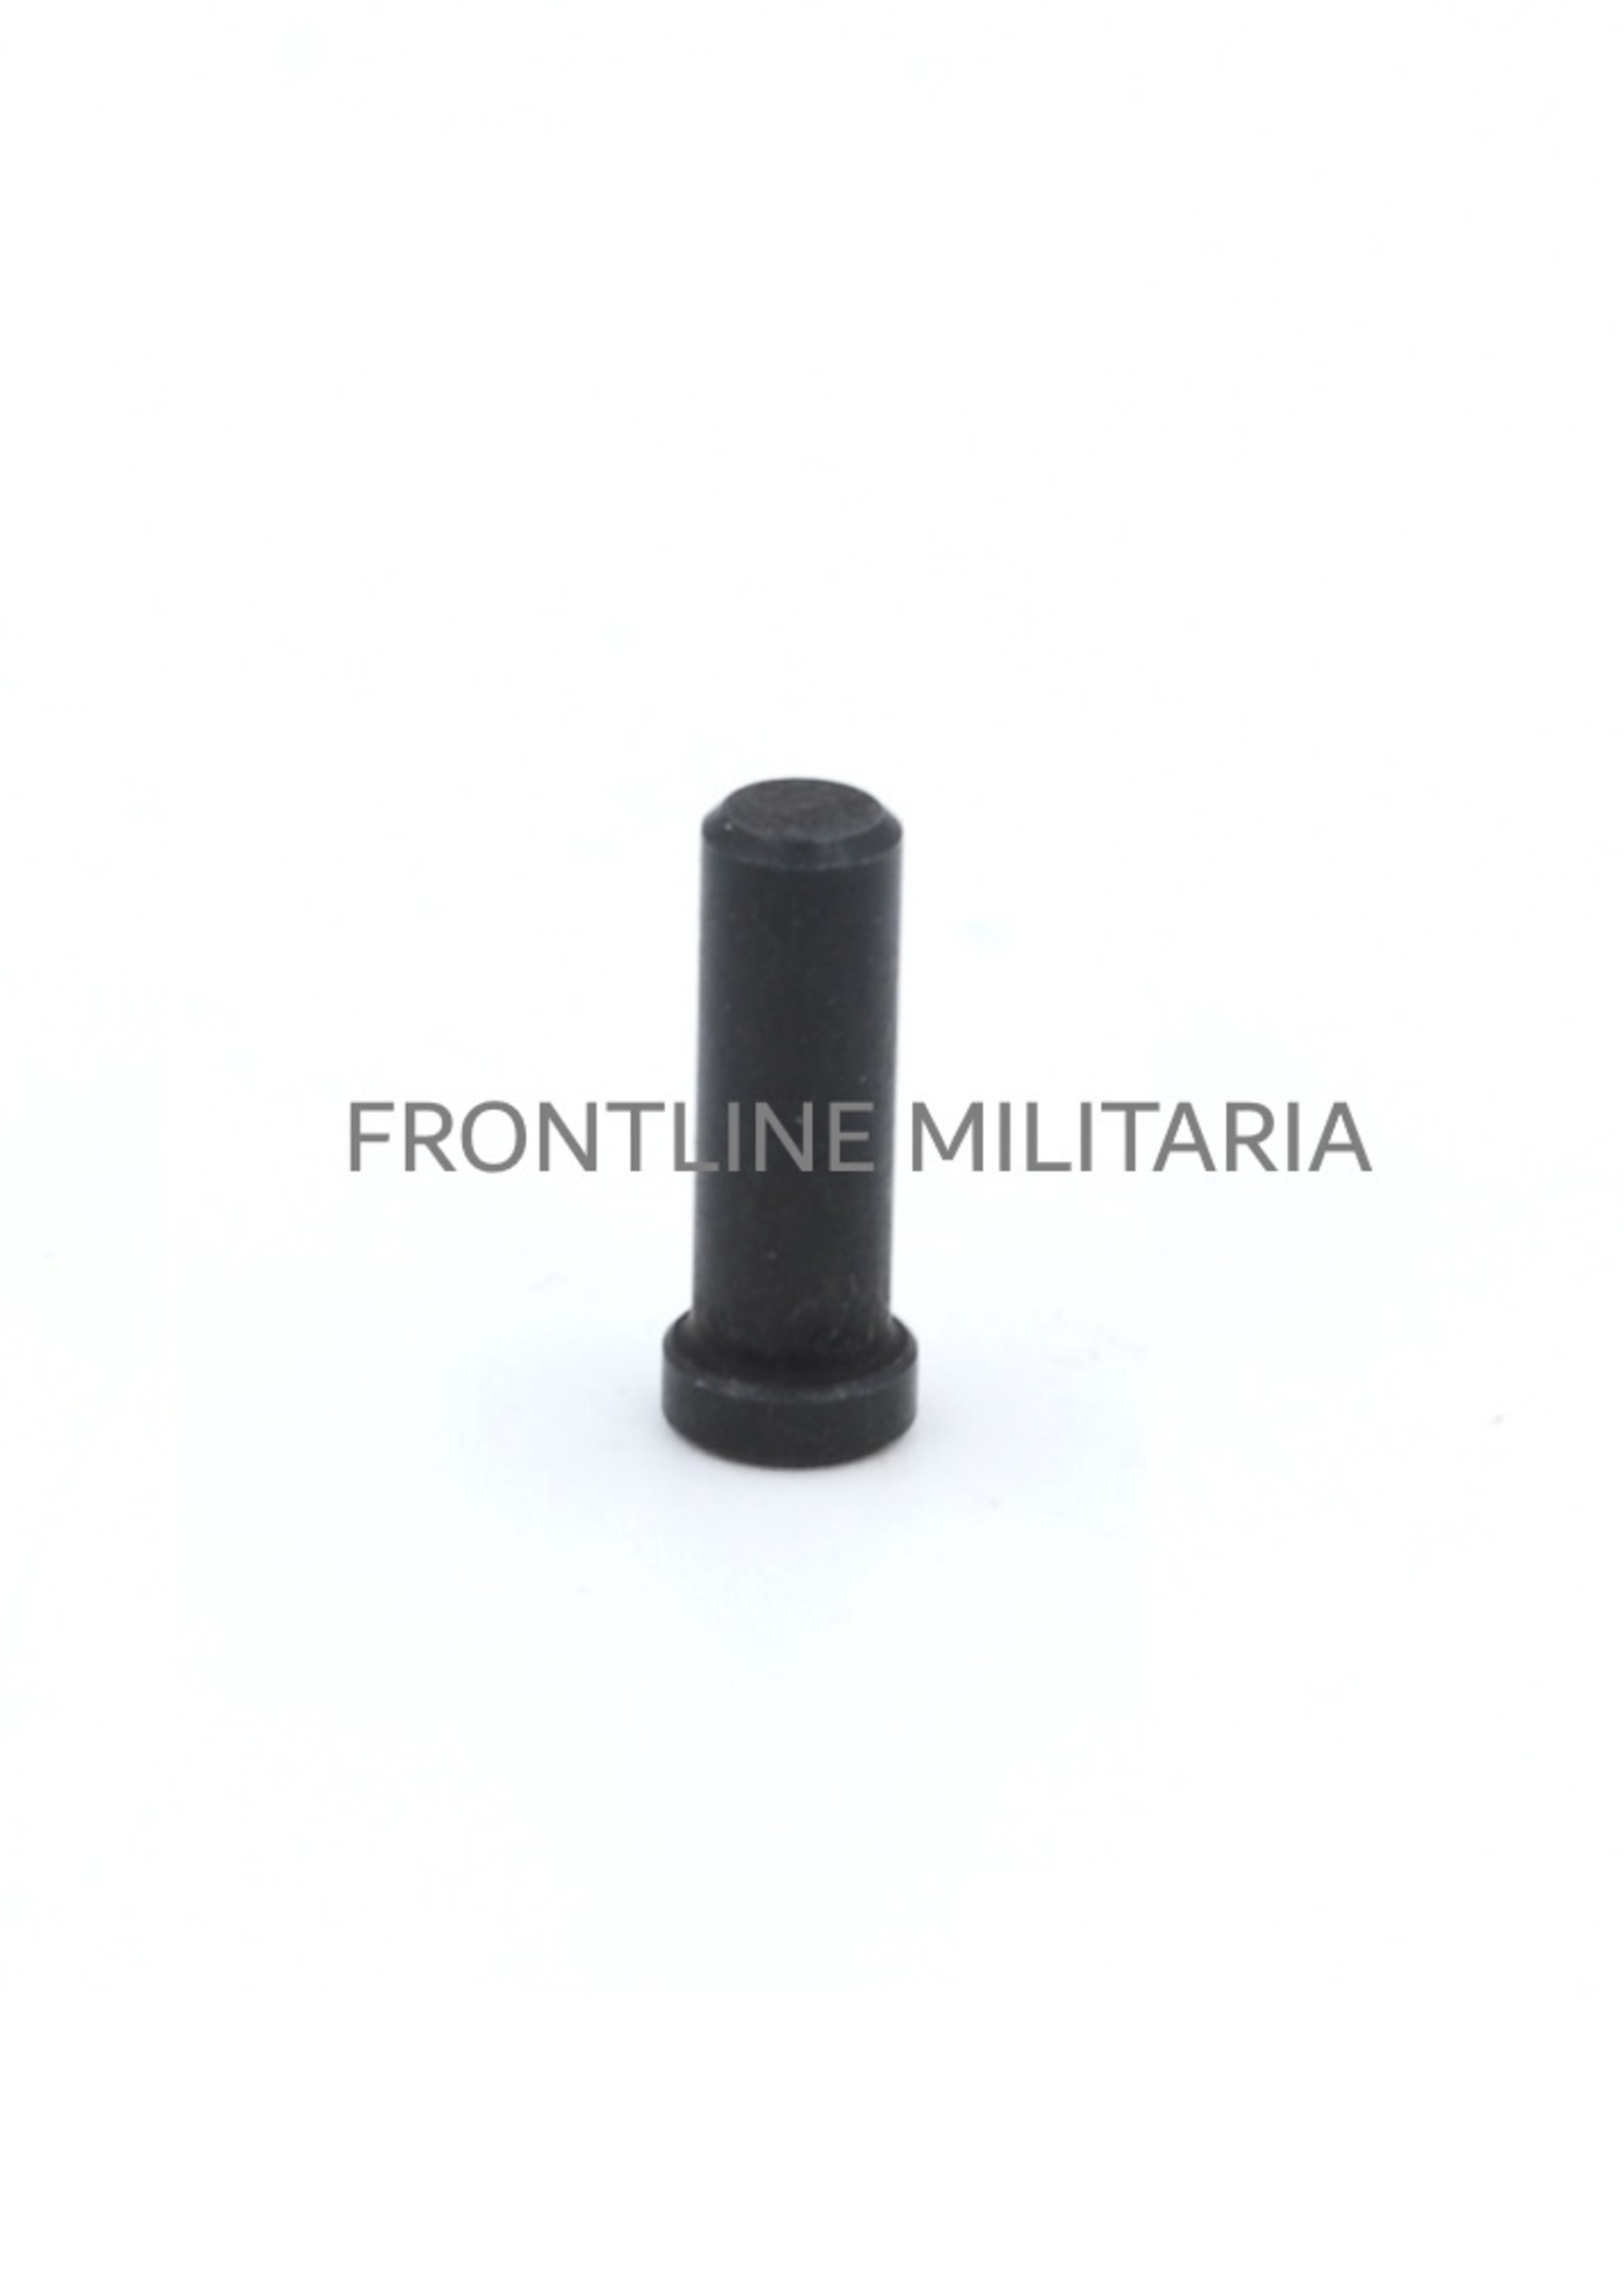 Ejector pin for the G43 and K43 Rifle